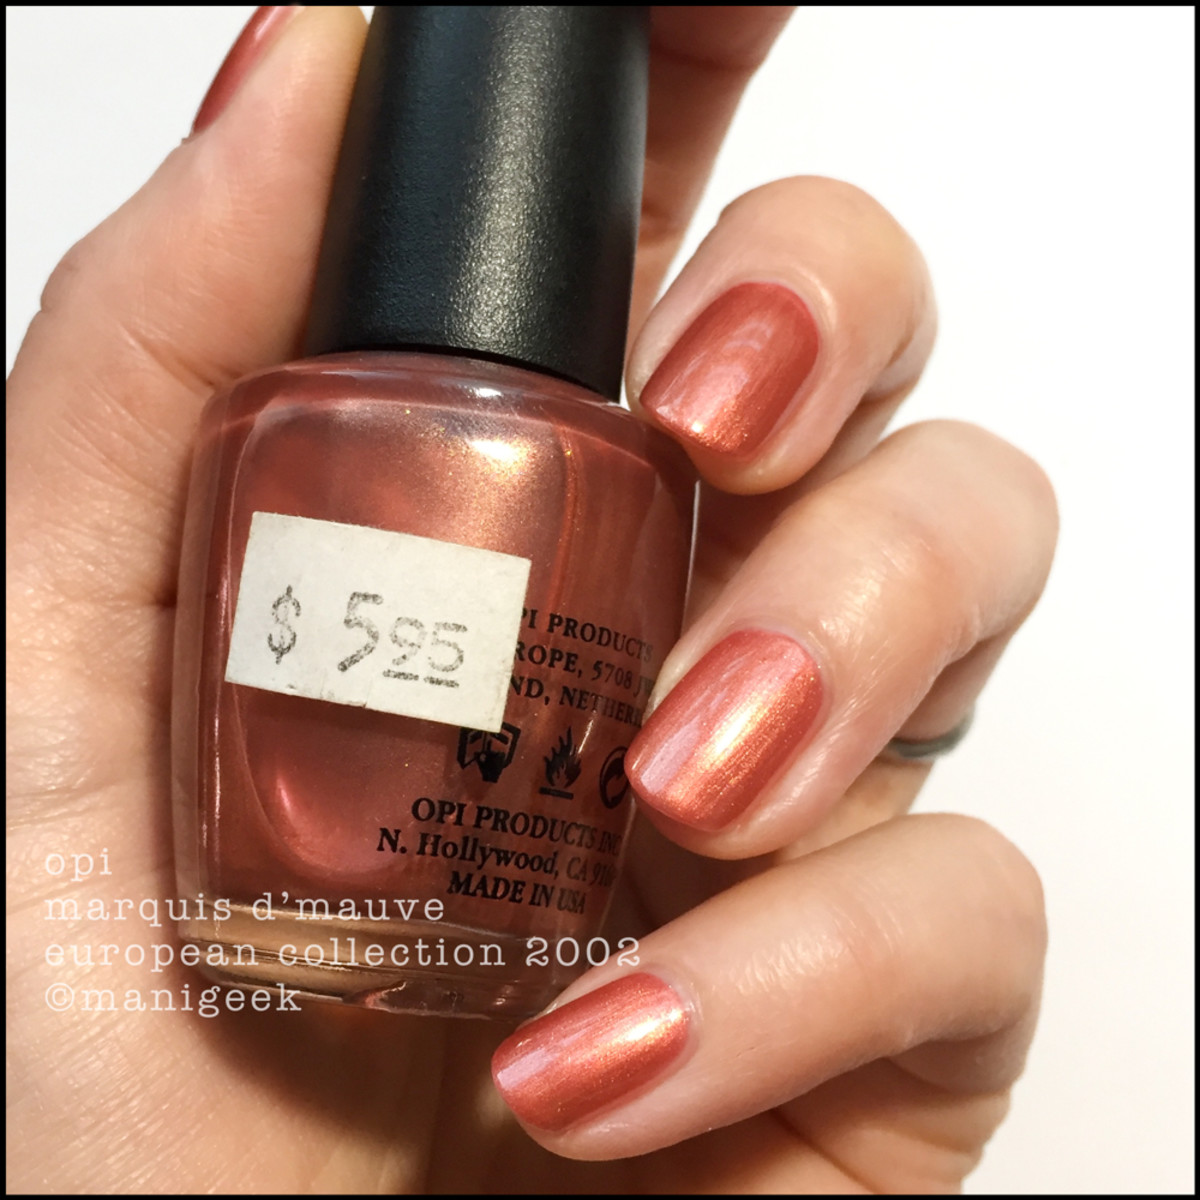 OPI Marquis D'Mauve - NL E11 OPI European Collection 2002